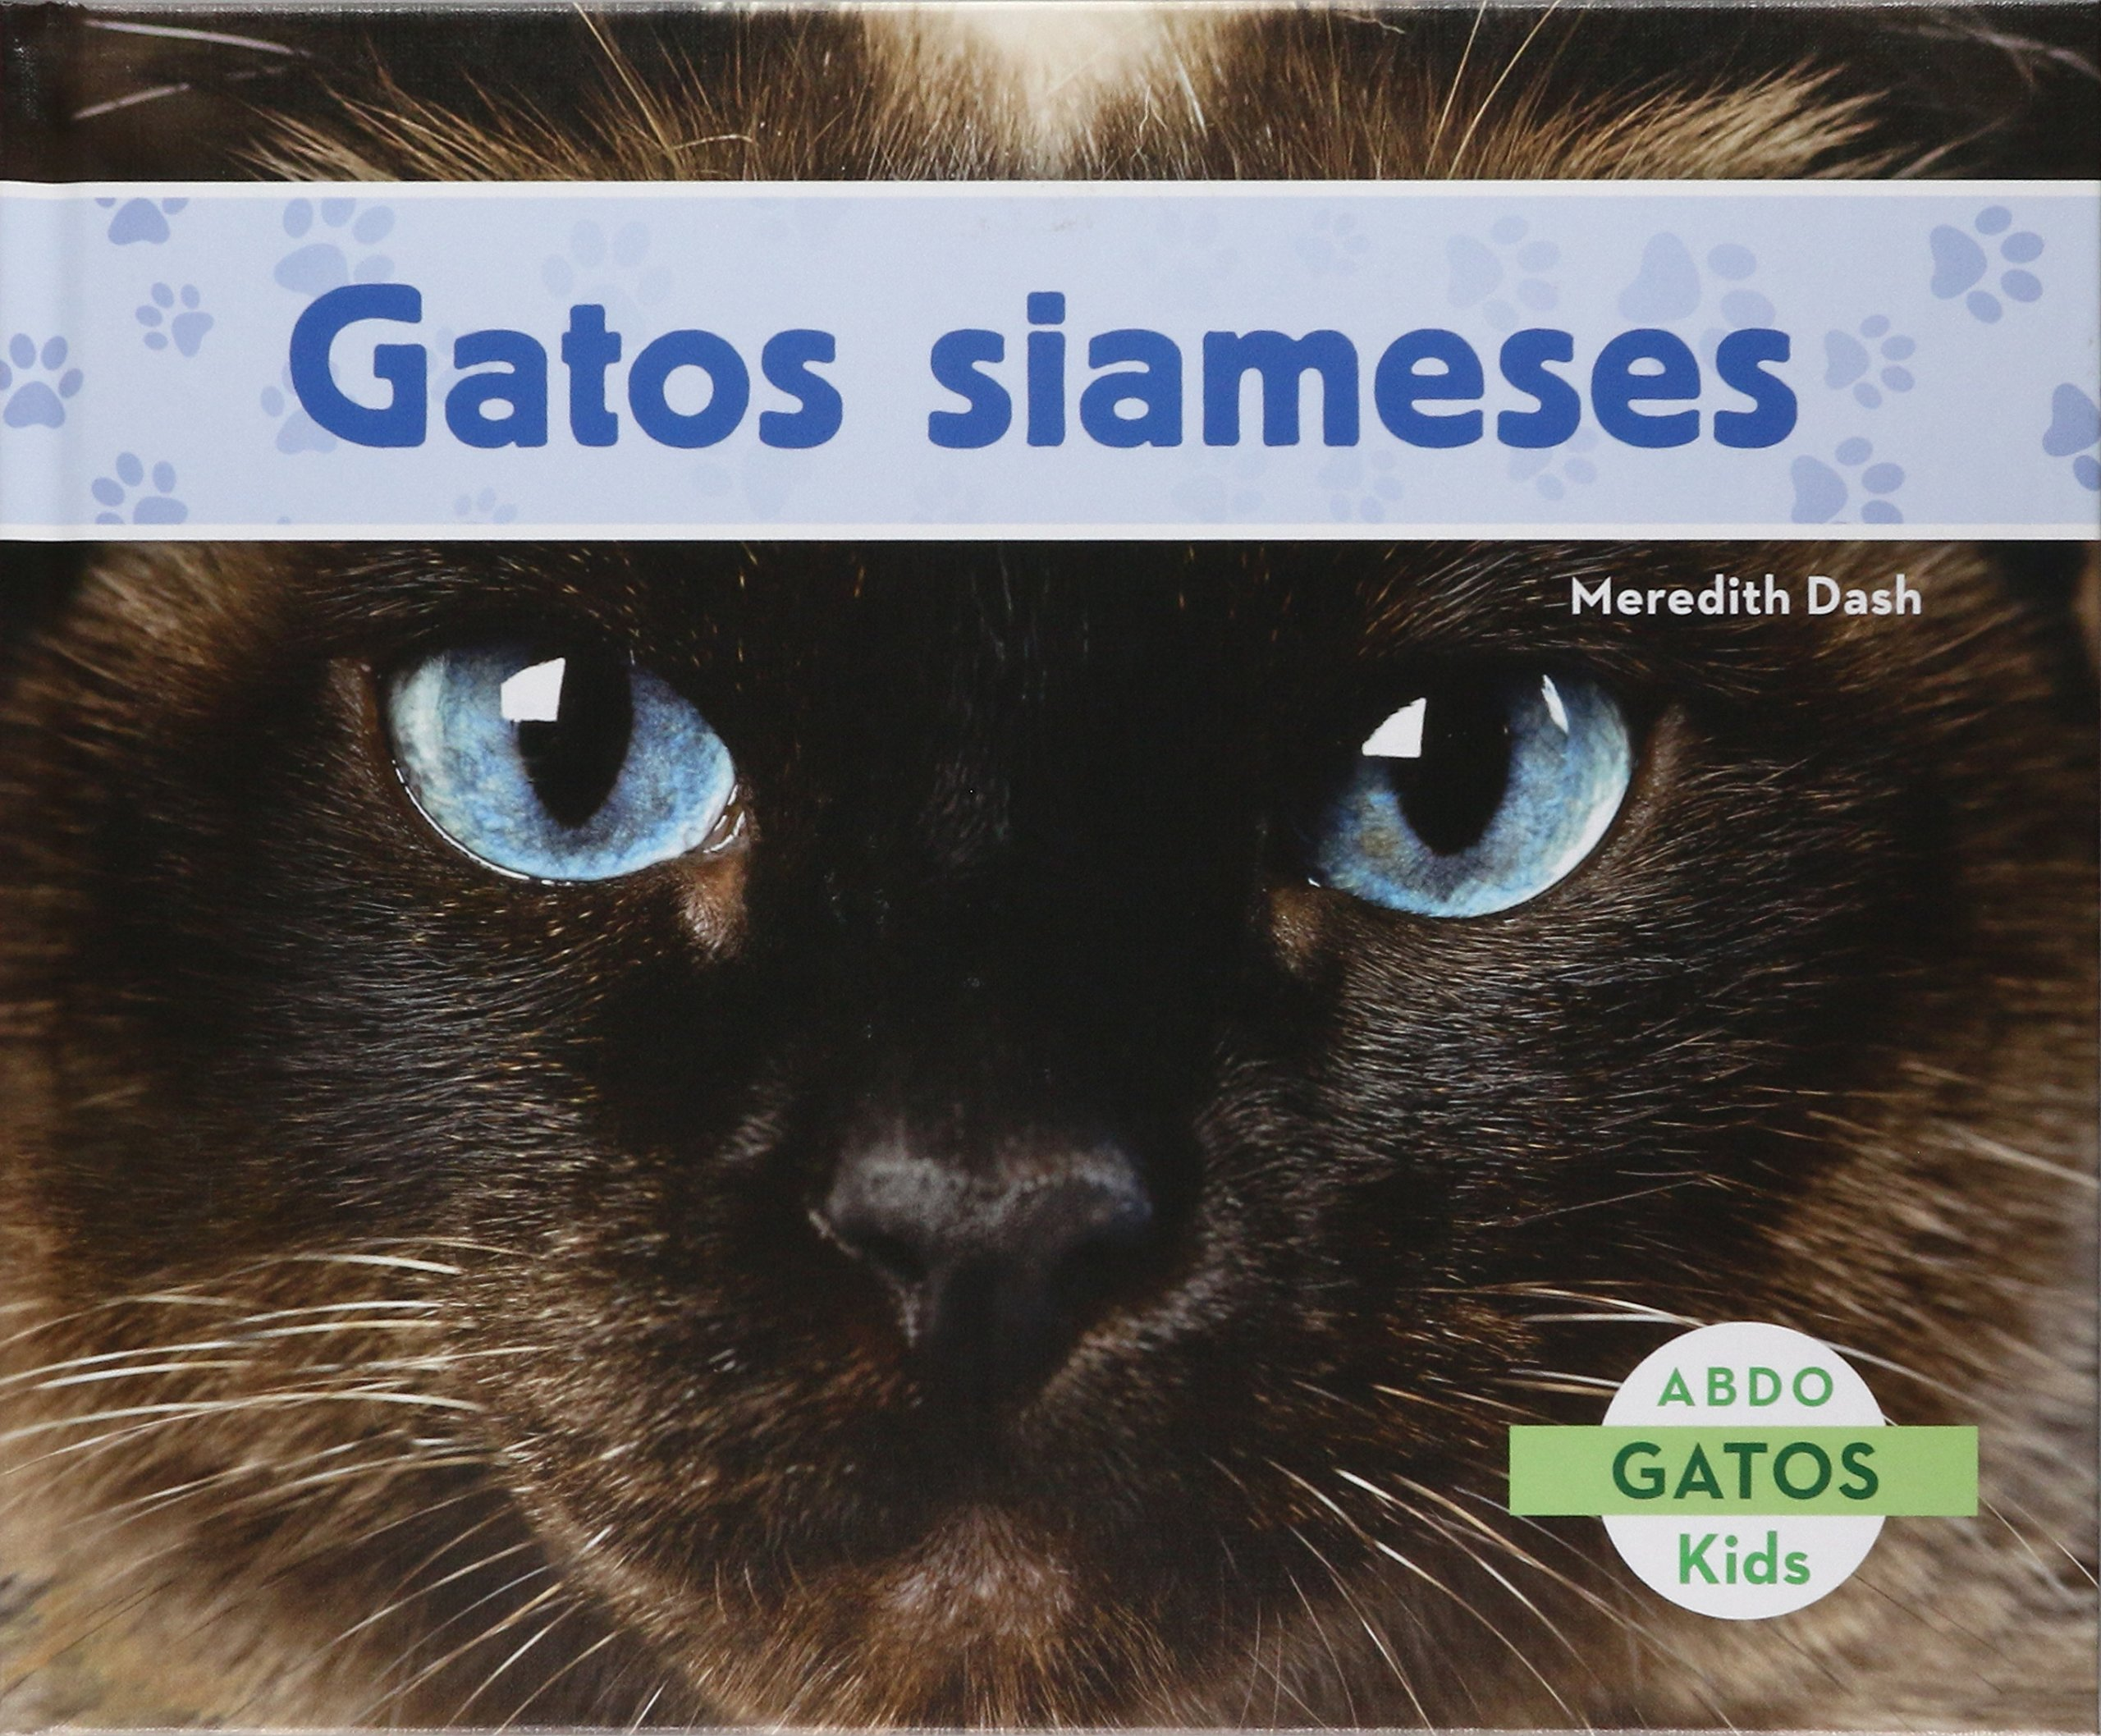 Gatos siameses (Gatos / Cats) (Spanish Edition) (Spanish) Library Binding – September 1, 2014